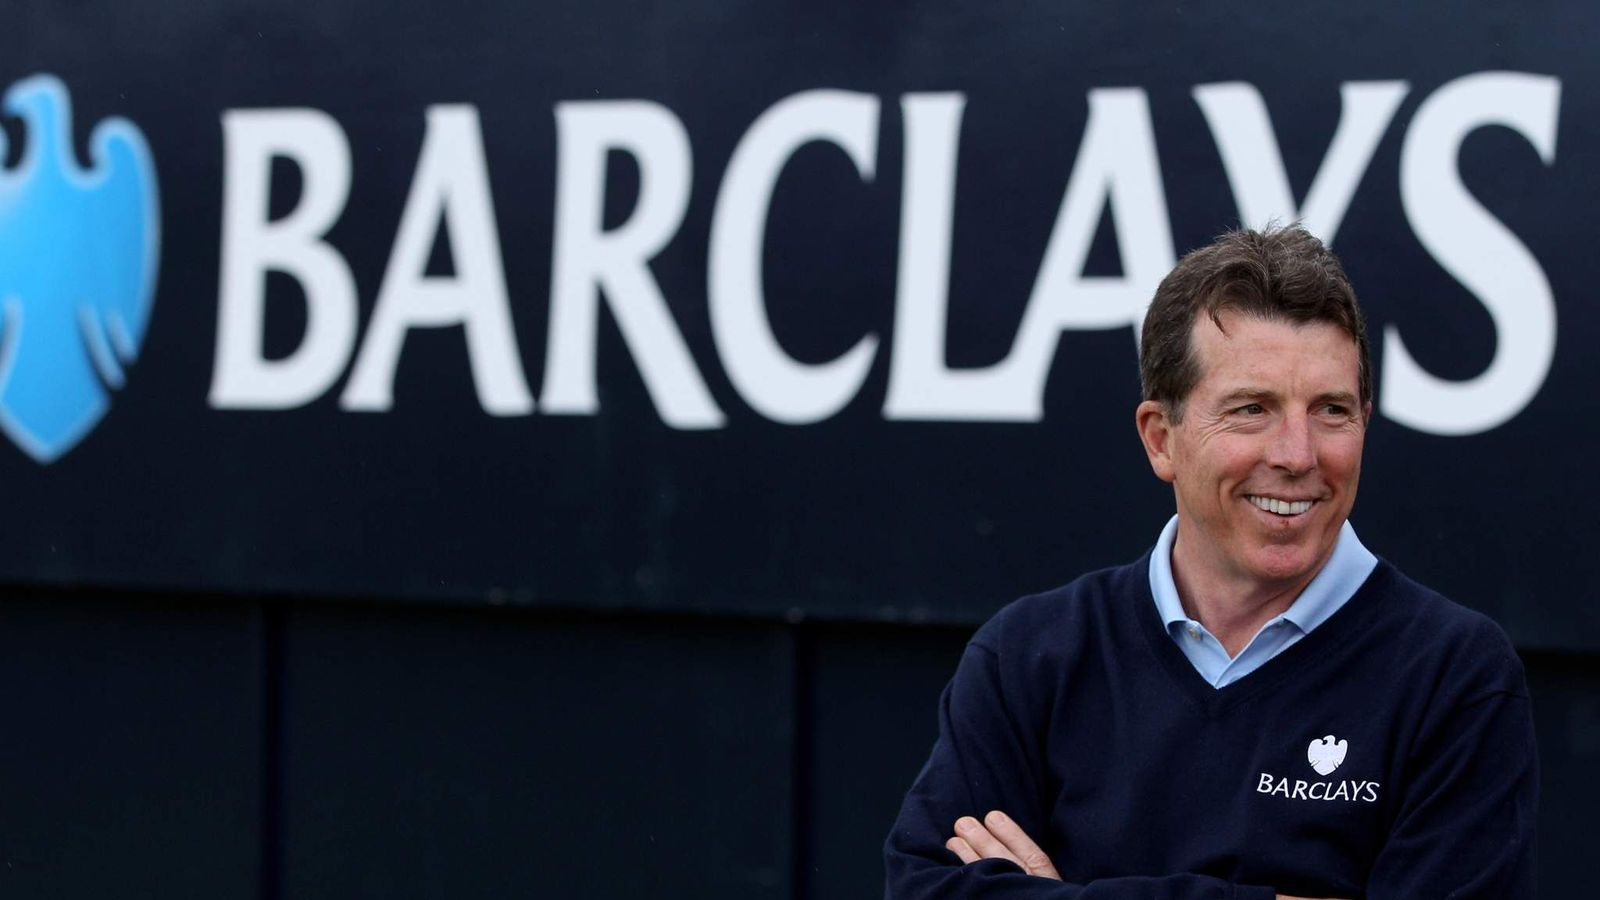 President of Barclays Bob Diamond